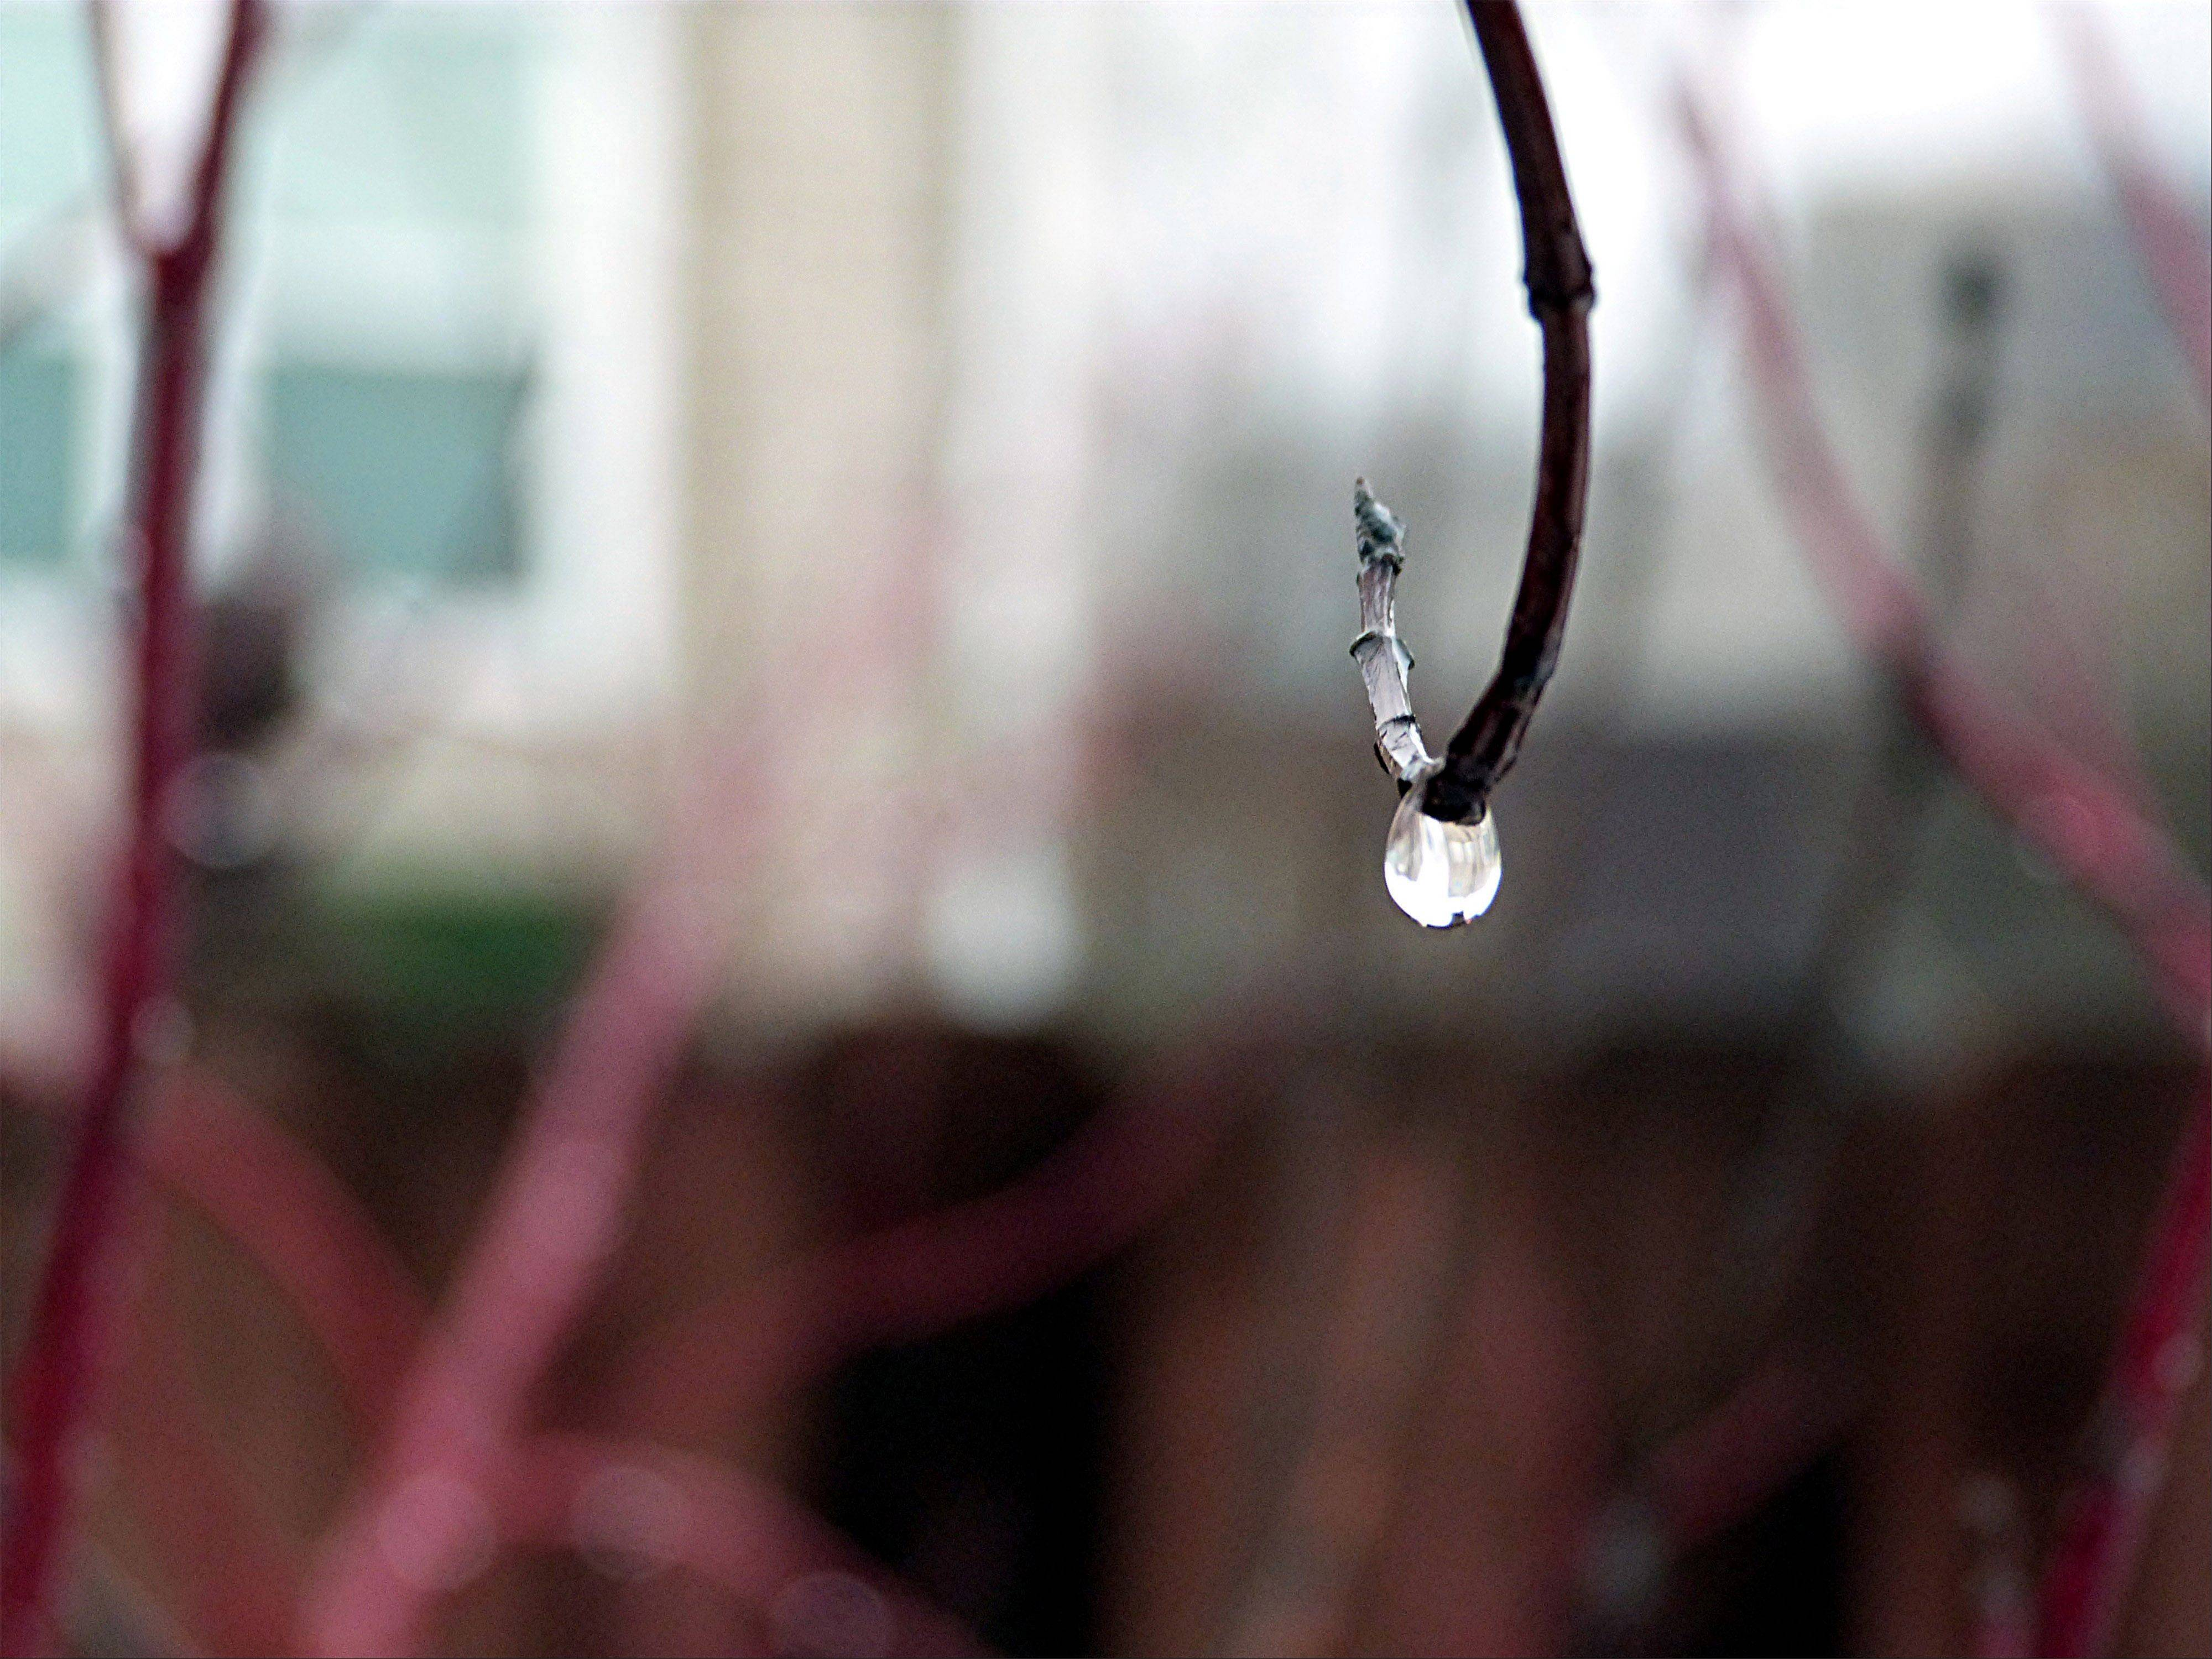 A bead of water hangs suspended from a curved red-tipped dogwood branch one rainy morning.